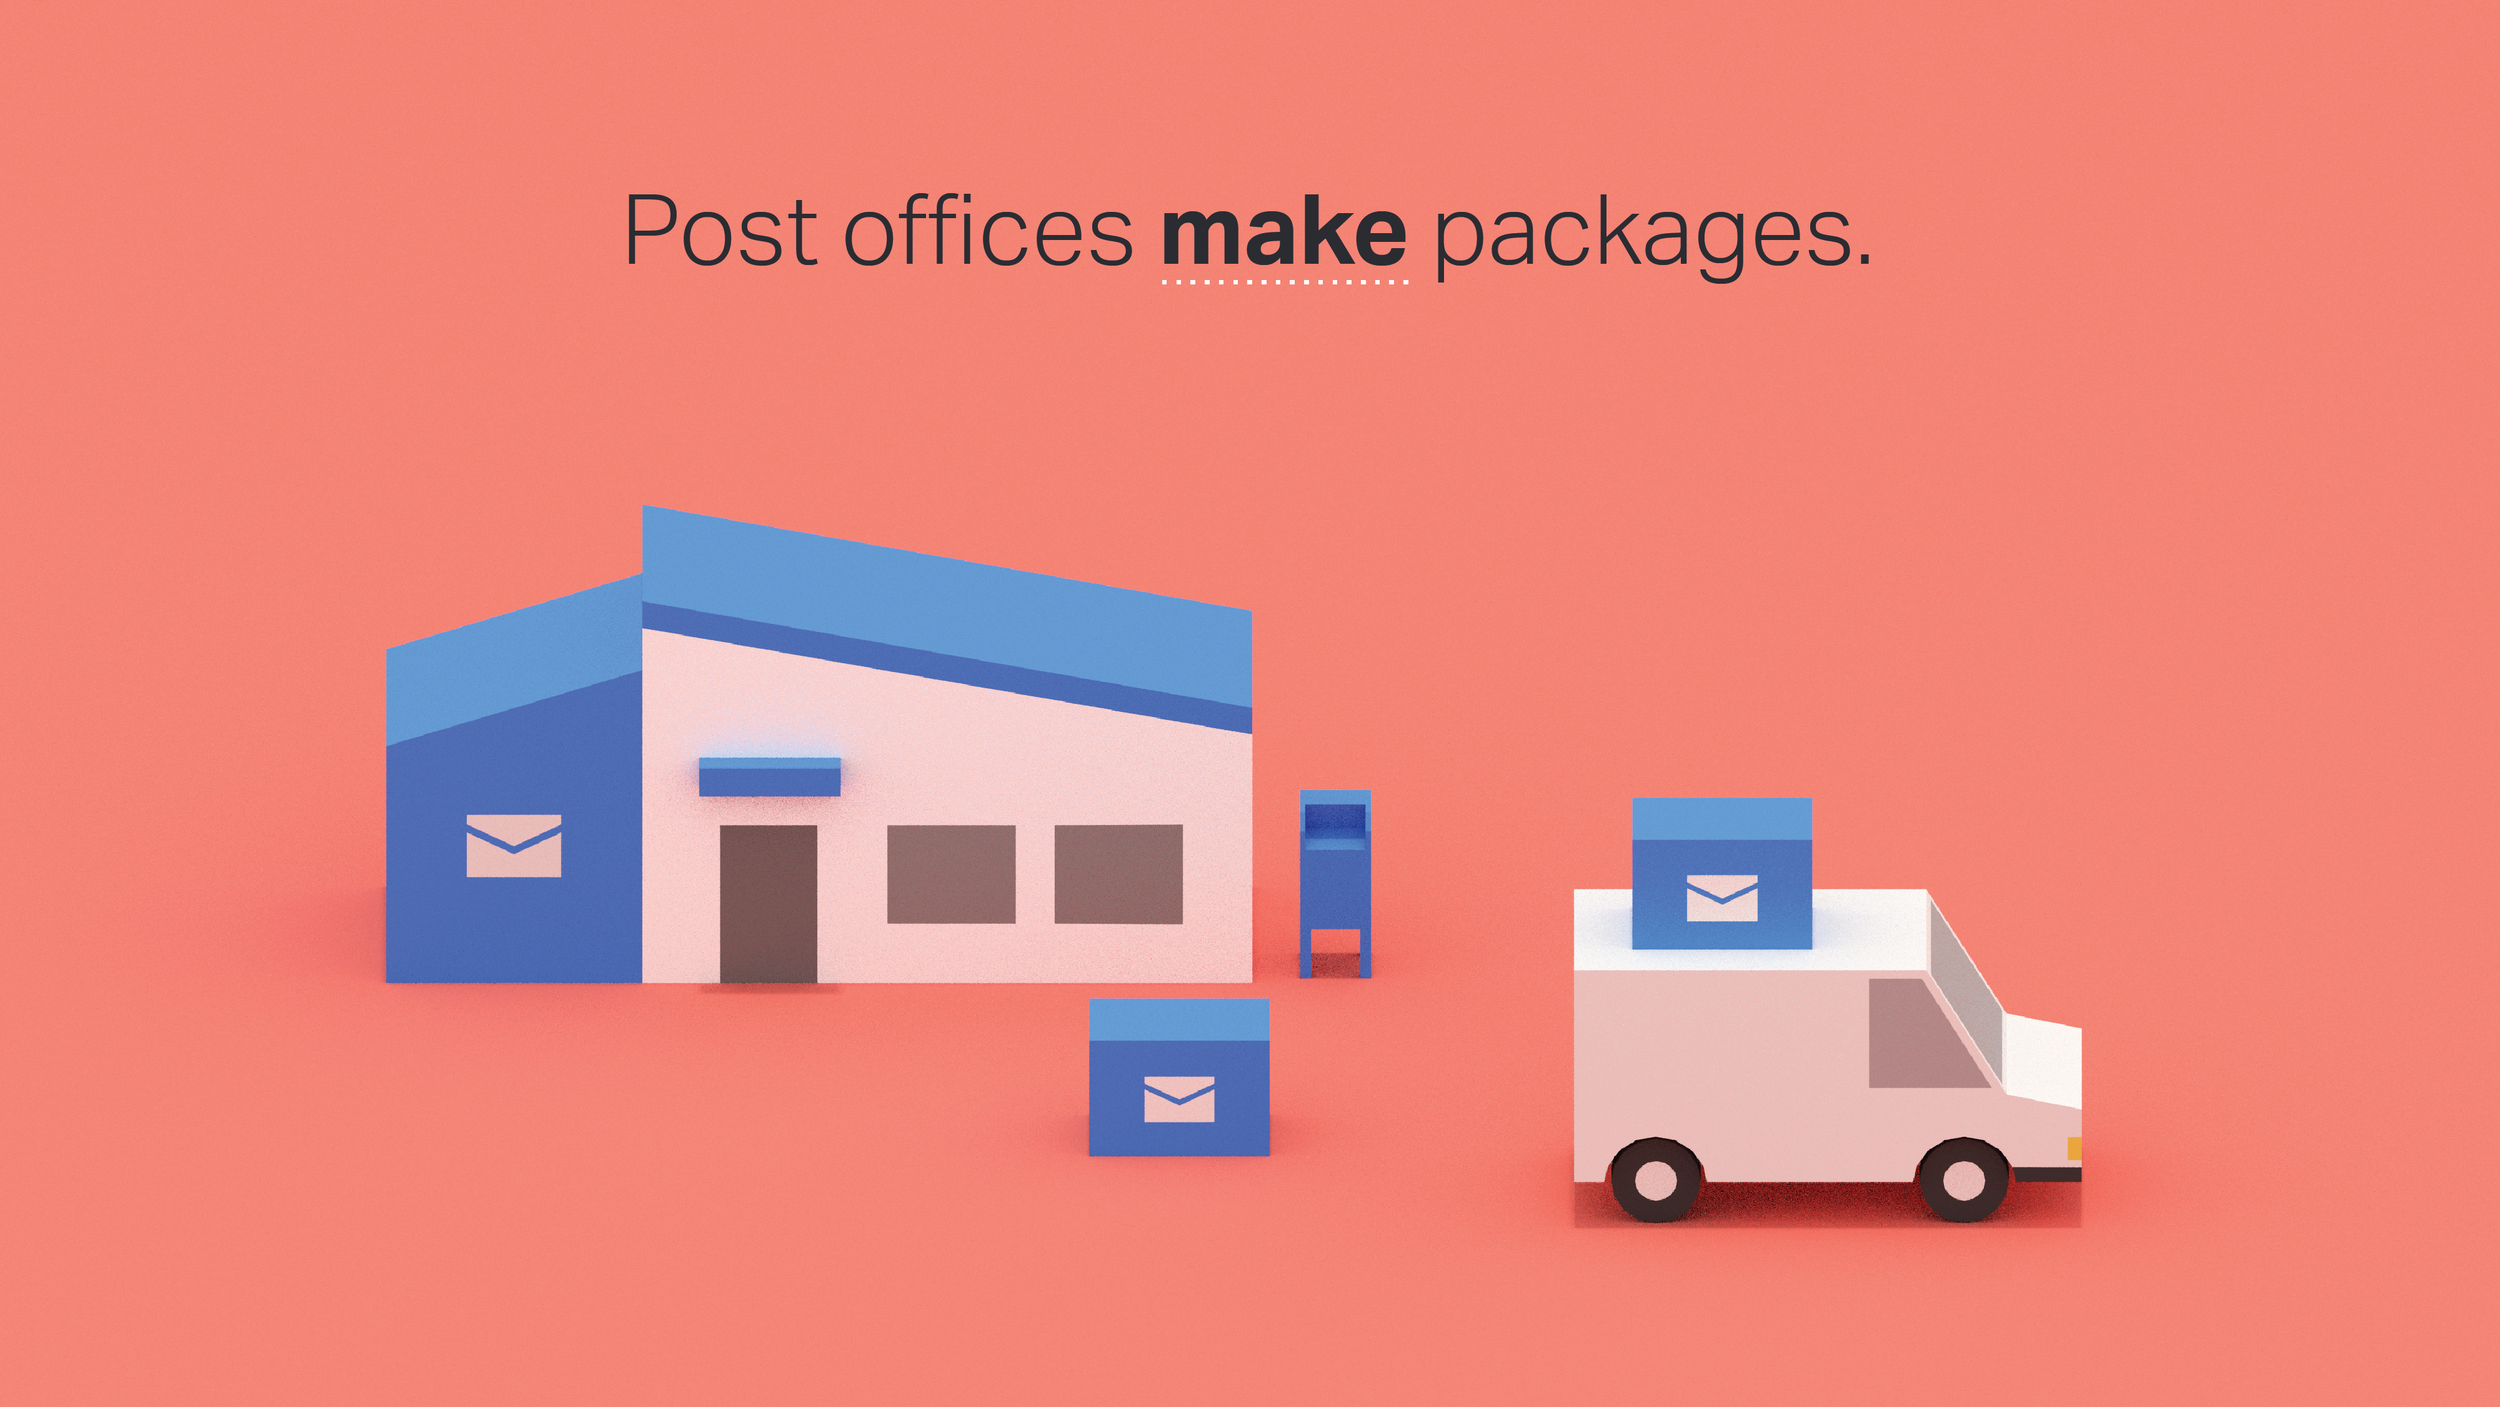 Moatboat-PostOfficesMakePackages.png